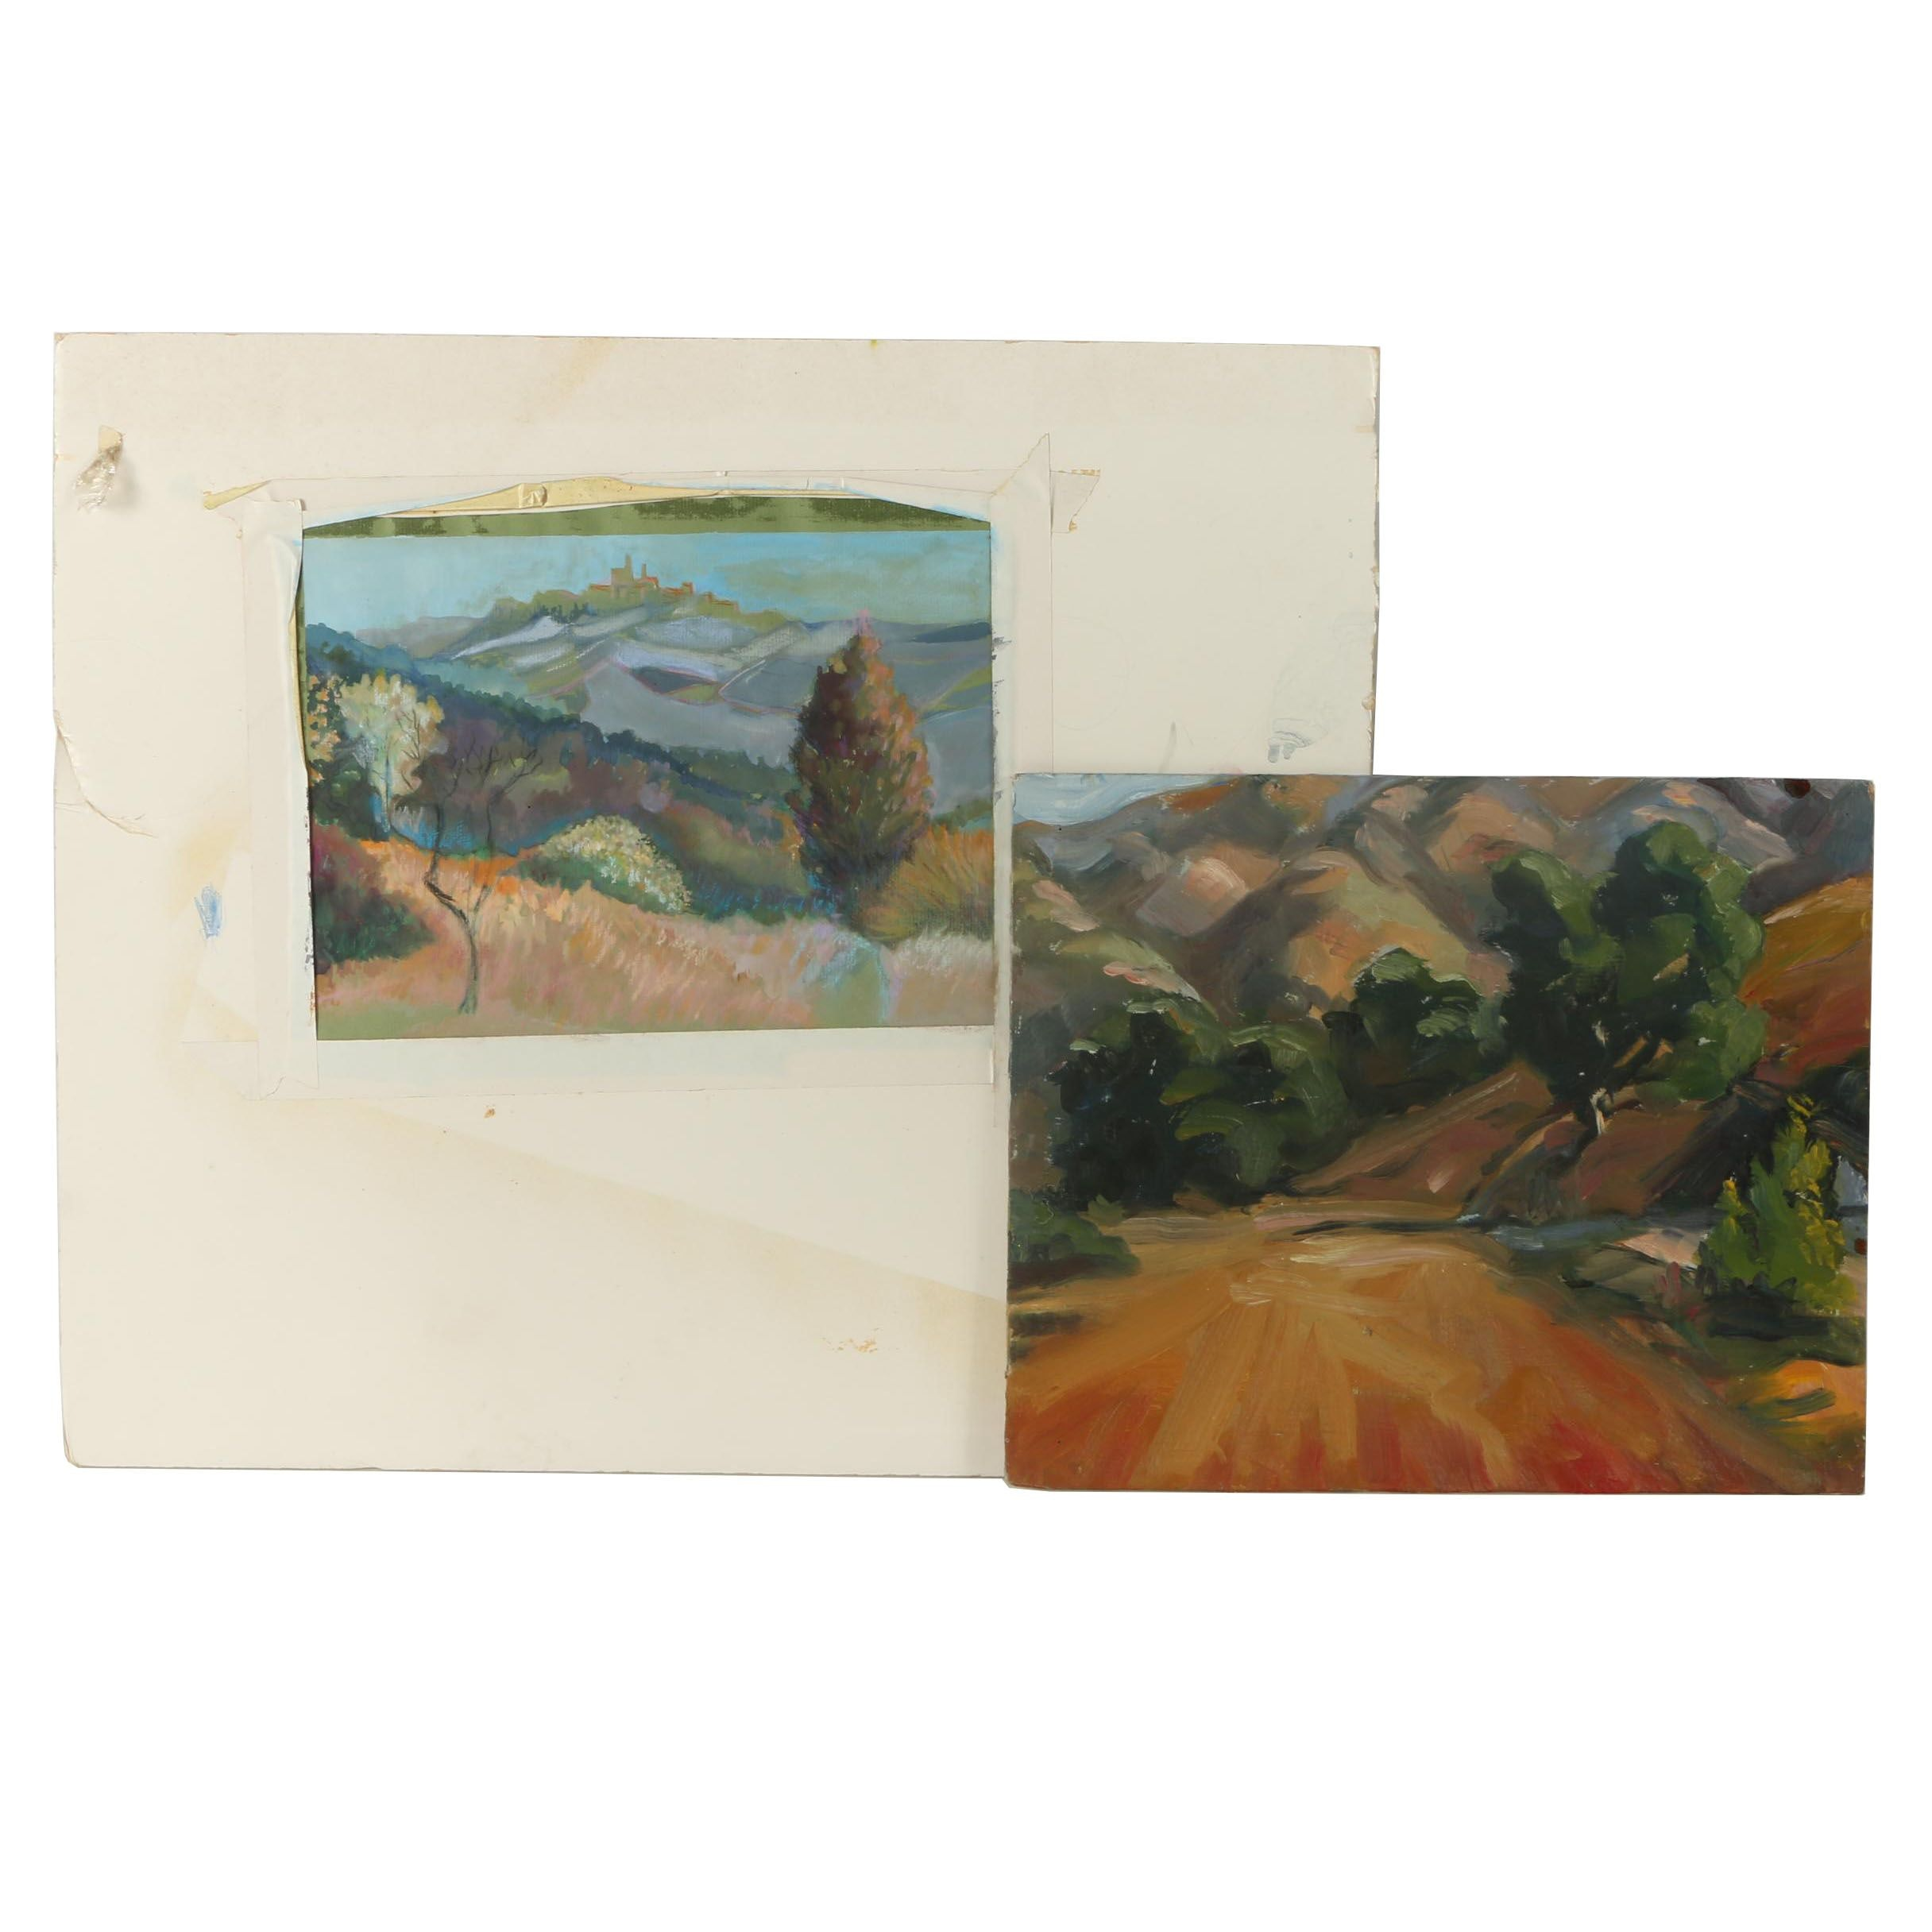 Gouache and Oil Paintings of Post Impressionist Inspired Landscape Scenes